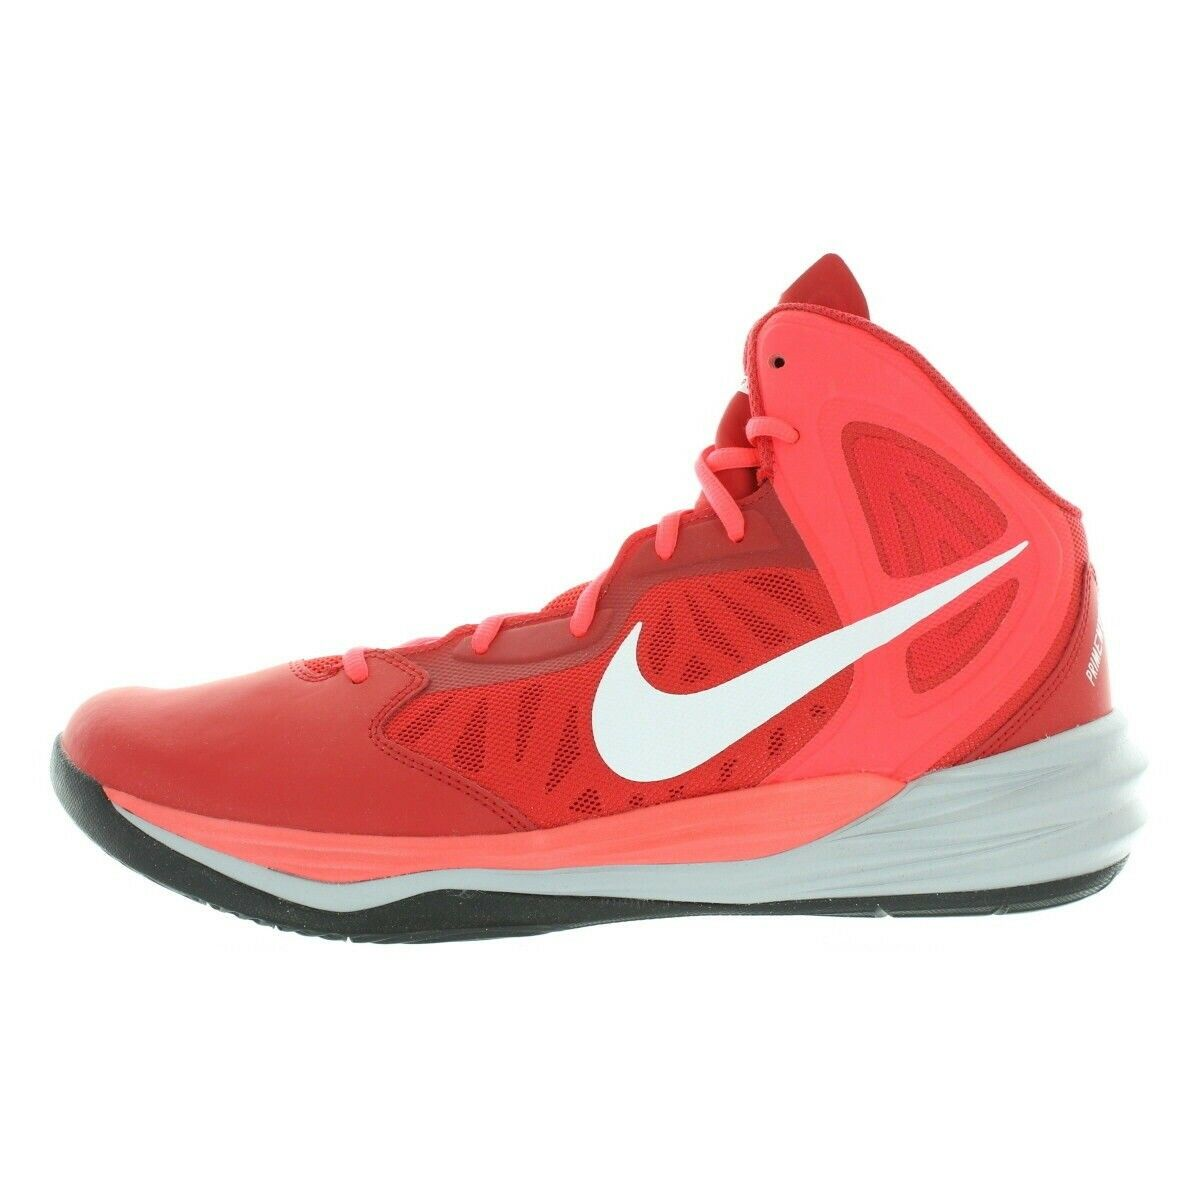 Nike Mens Red White Laser Prime Hype DF Basketball shoes Size 13 Medium (D, M)